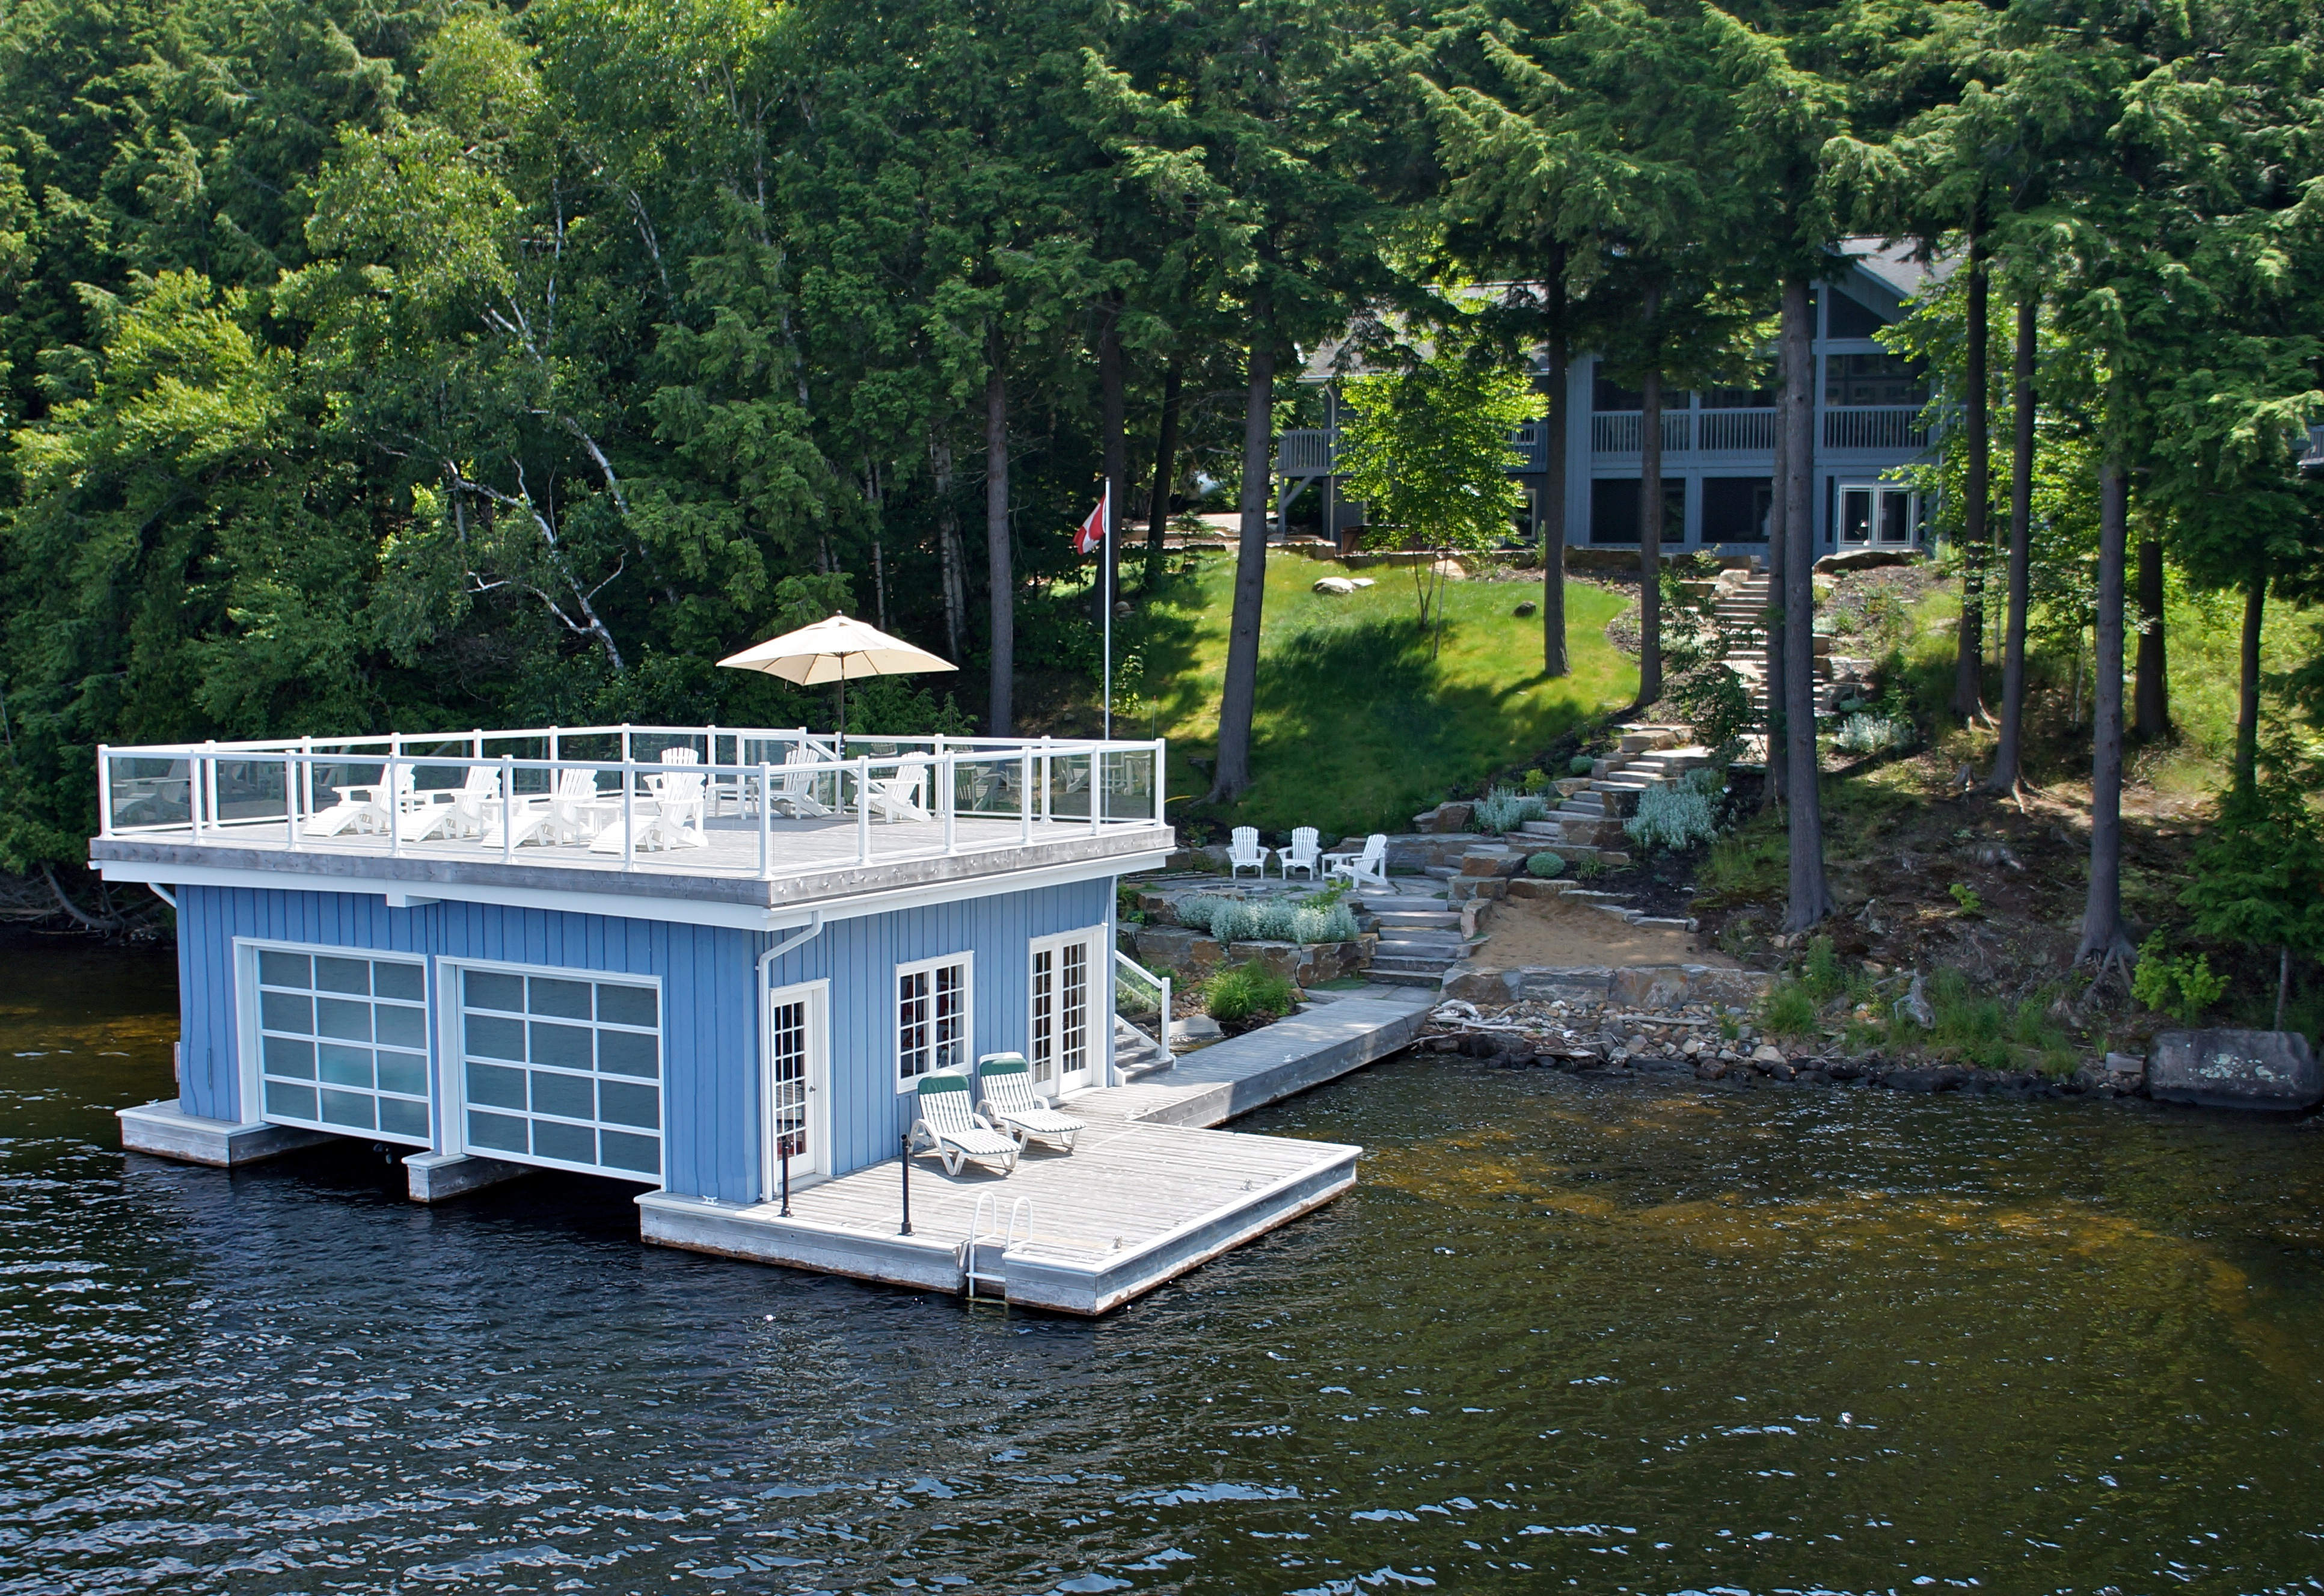 Taylor-1111-Hermans-Road-Boathouse-1-copy